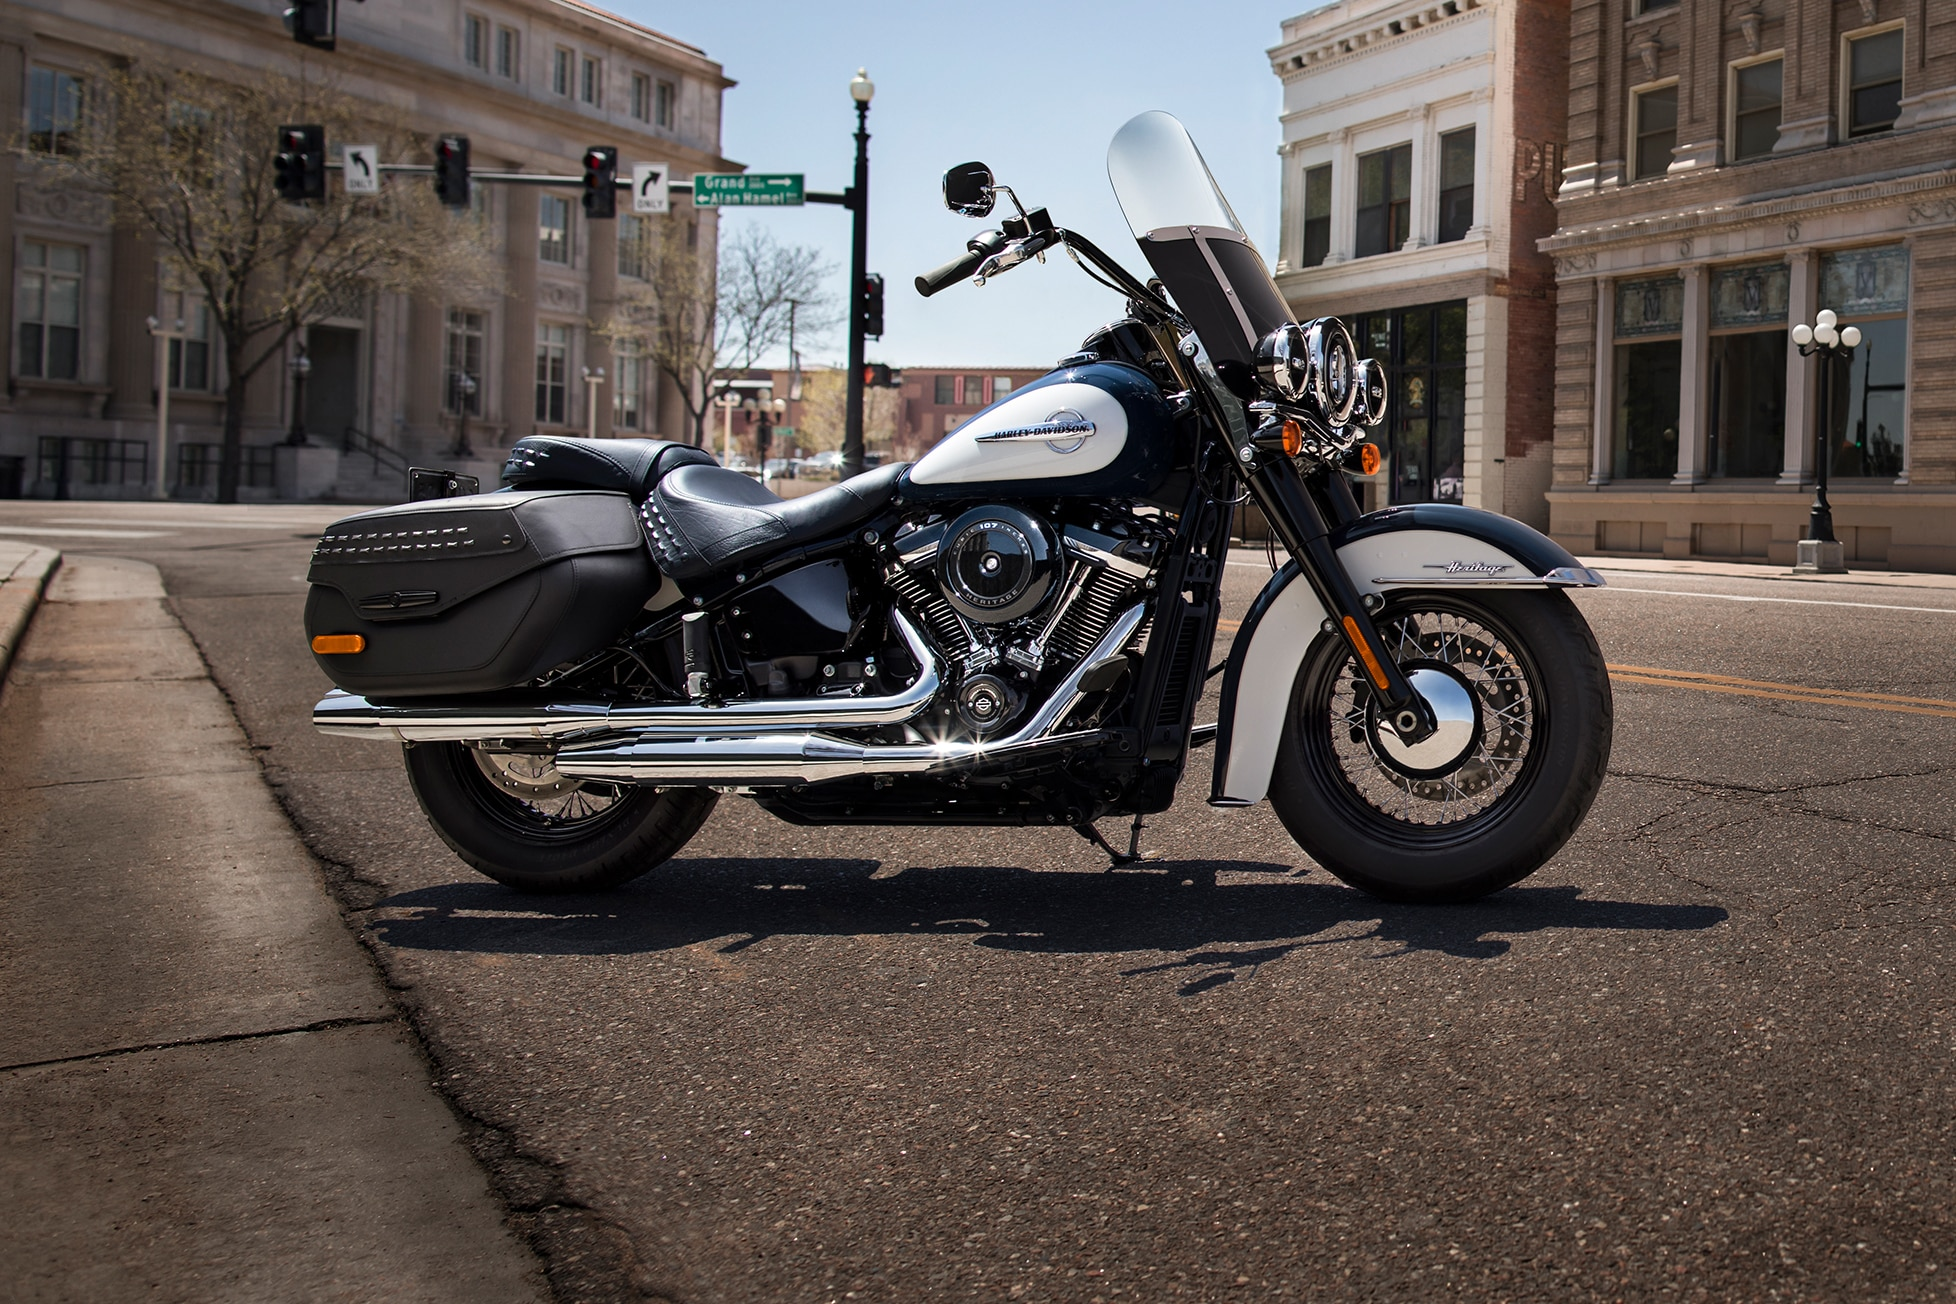 Harley Davidson: 2019 Heritage Classic Motorcycle